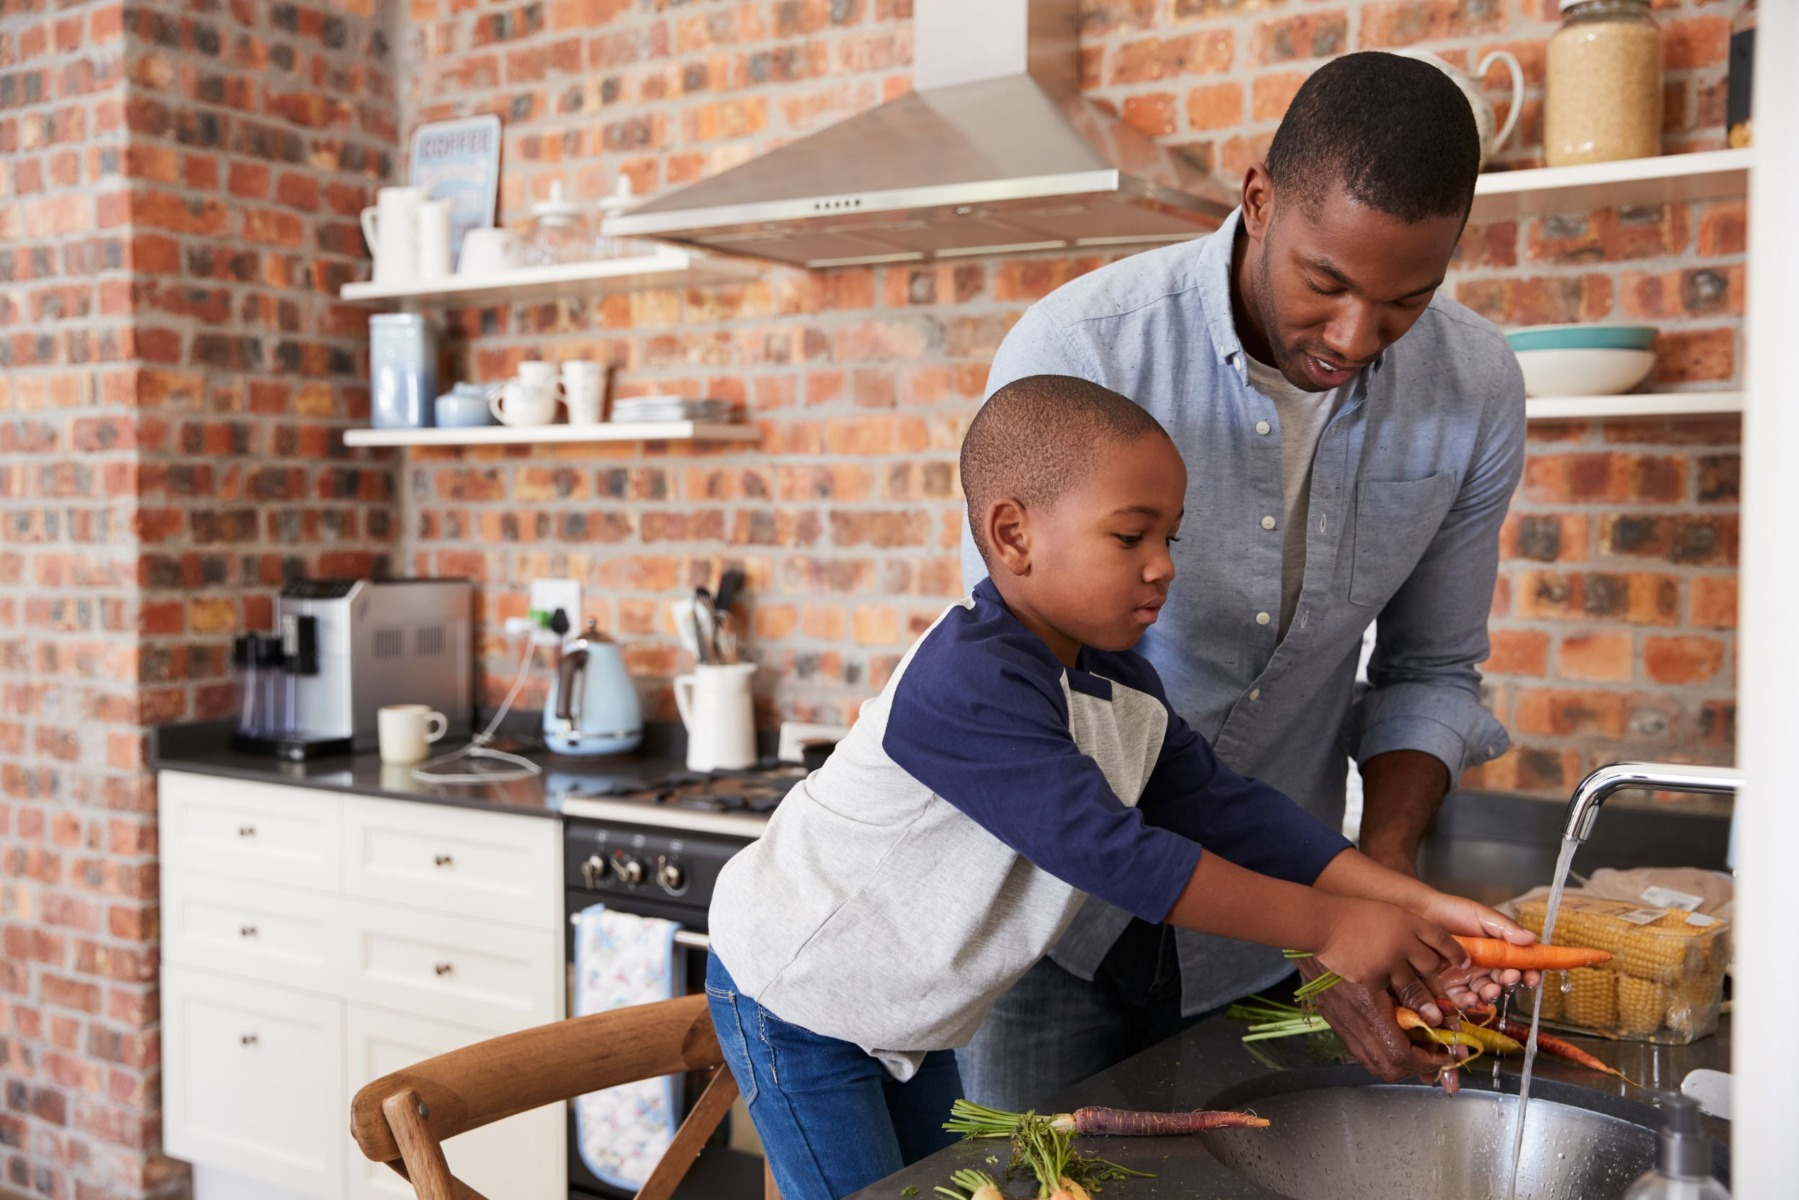 Young boy in the kitchen learning how to cook from his father